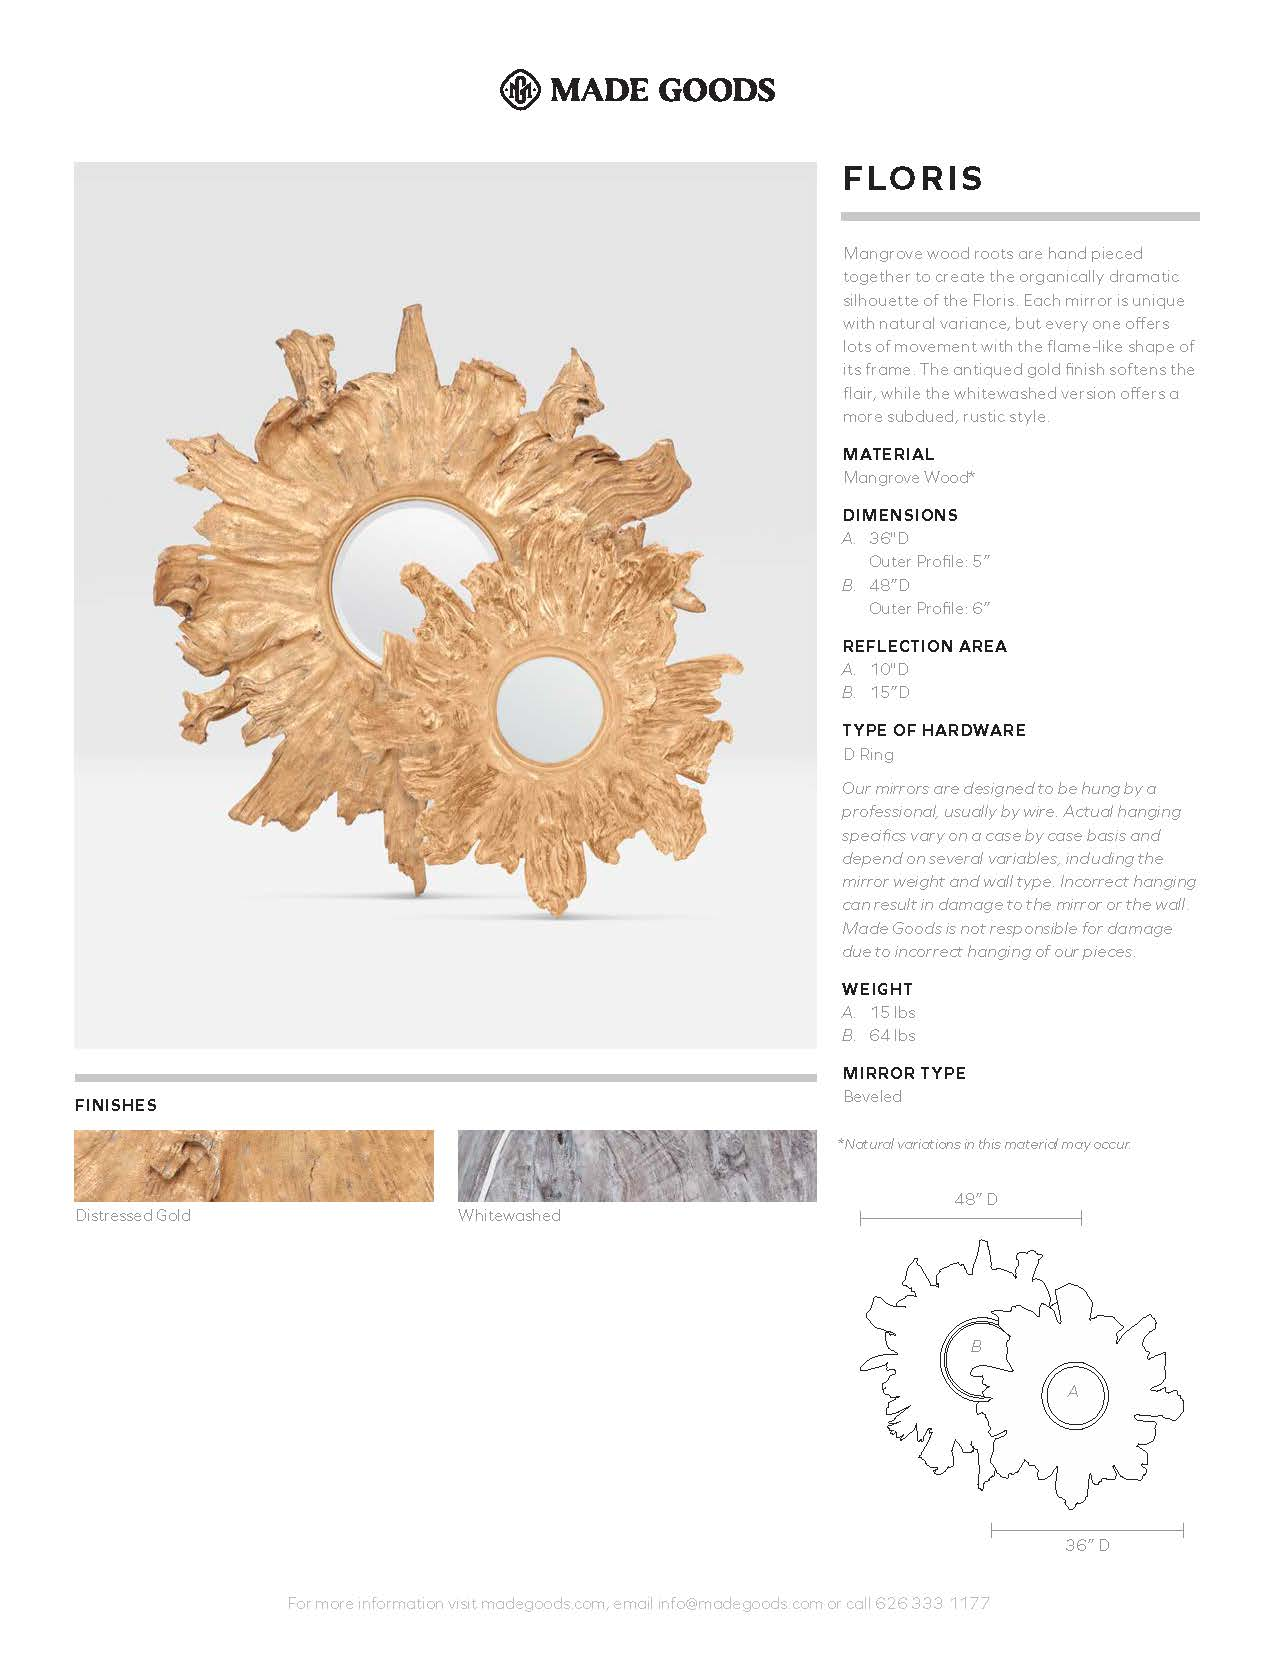 made goods floris wall mirror tearsheet